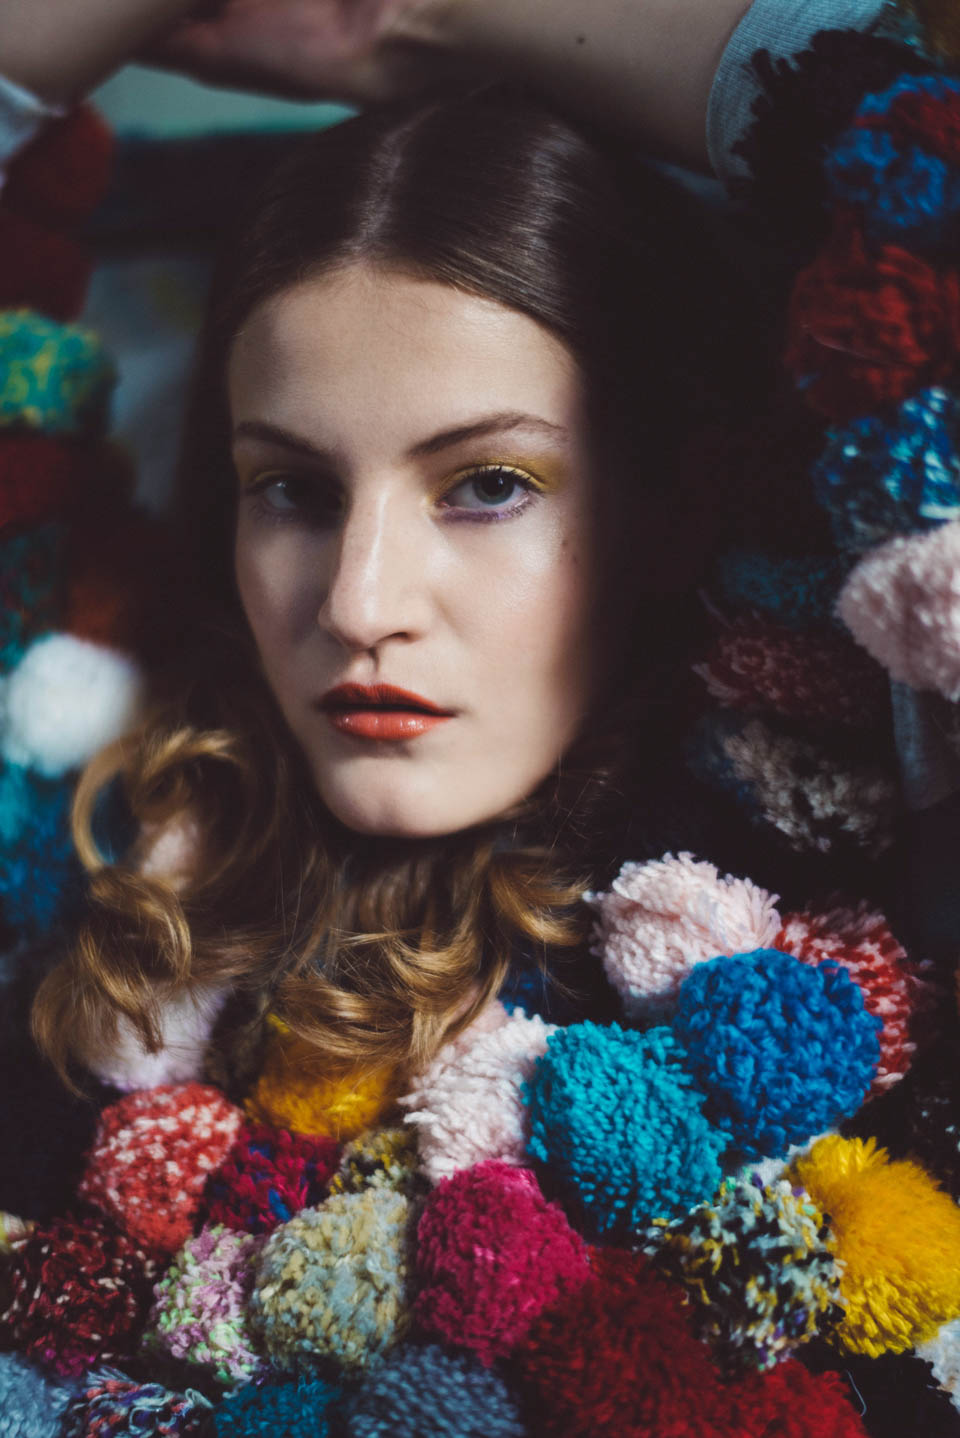 fashion editorial for cake magazine shot in cologne germany by fashion photographer erika astrid_23.jpg